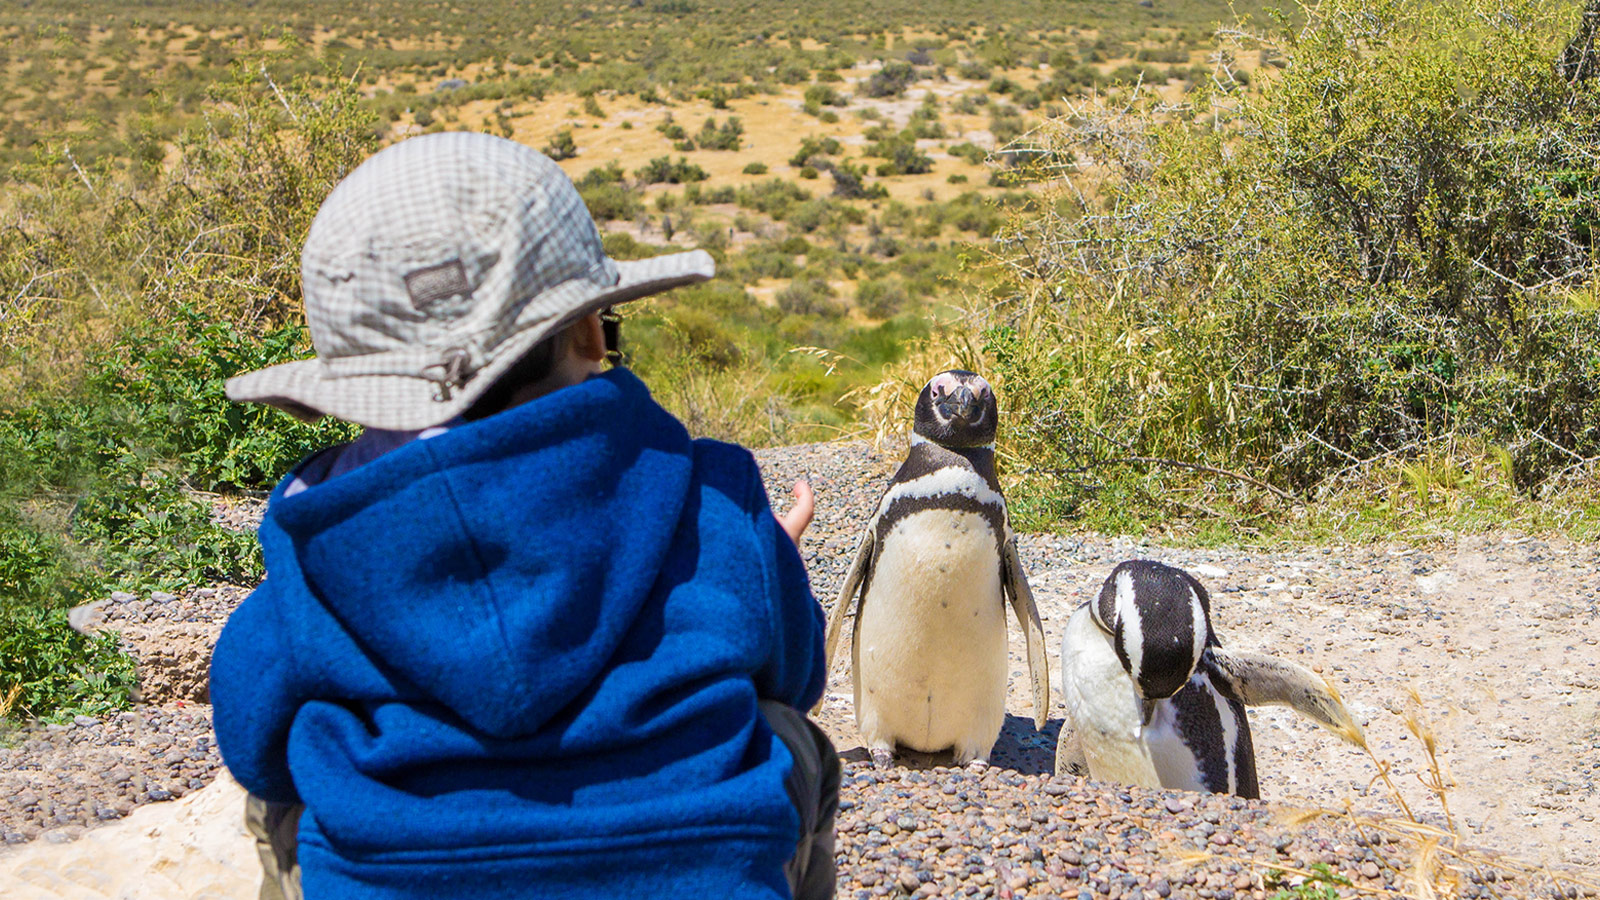 Young boy visiting penguins in Punta Tombo Argentina